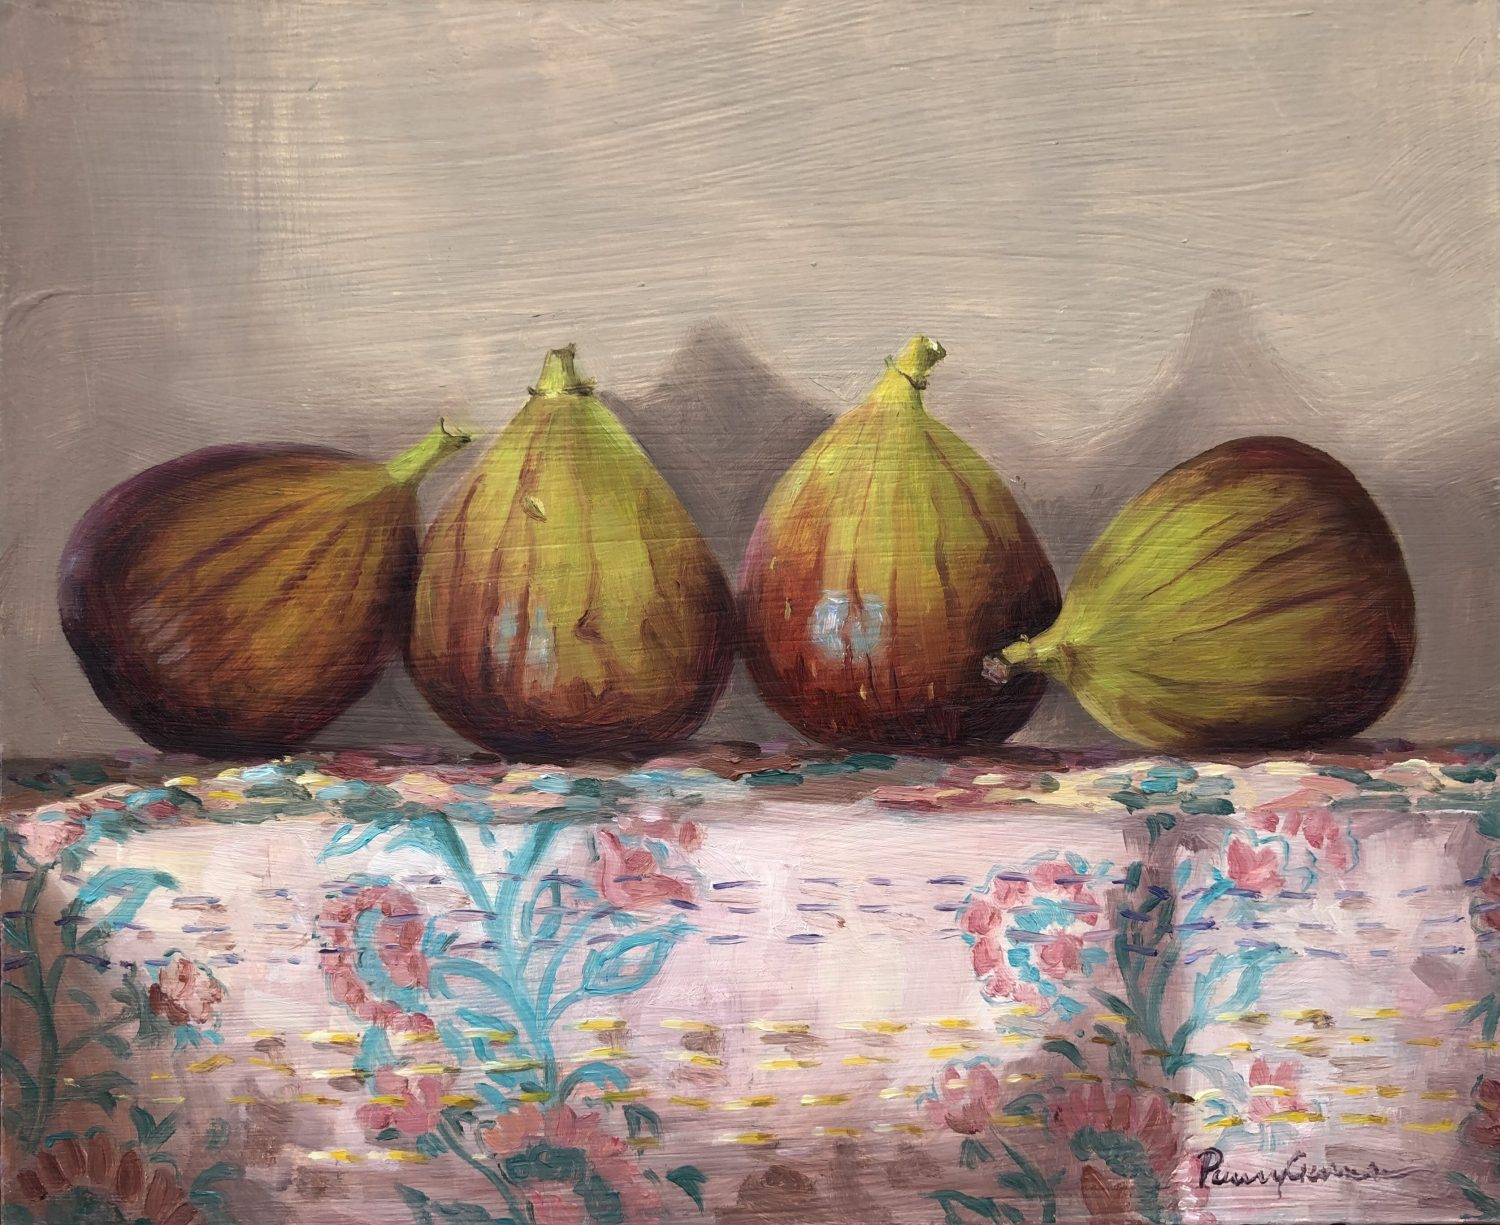 Figs on a Kantha by Penny German